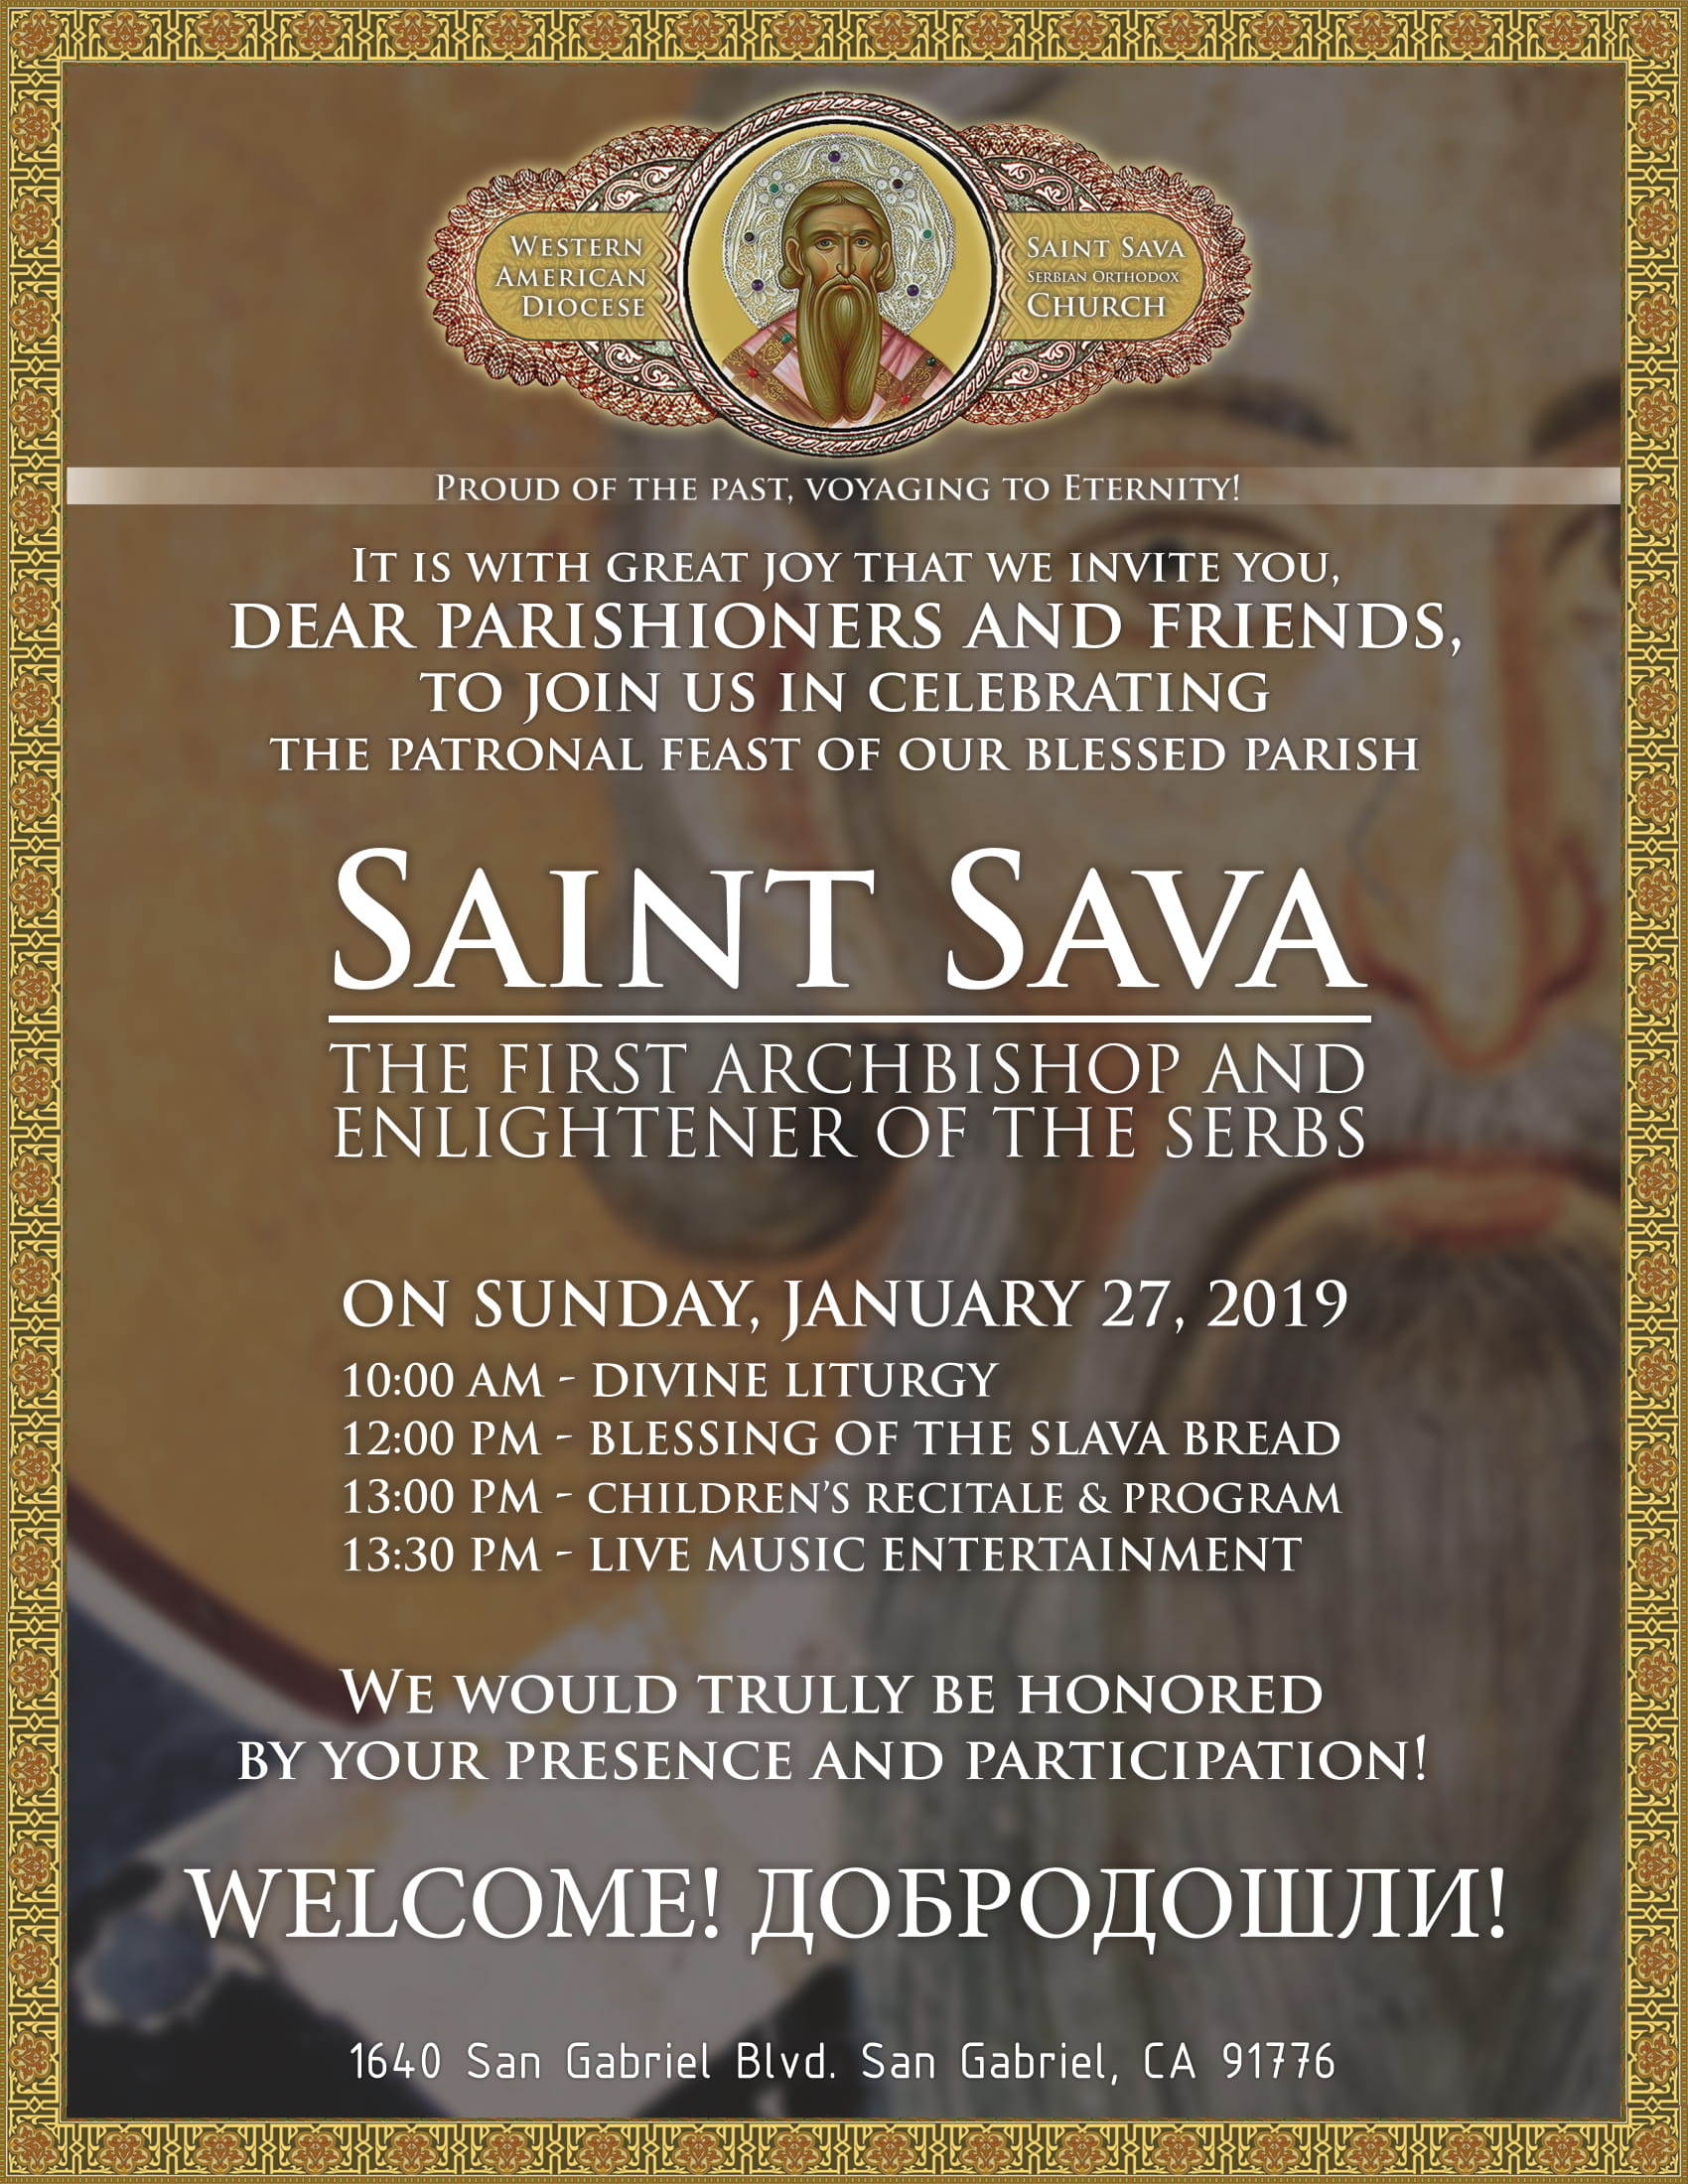 SAINT SAVA CELEBRATION